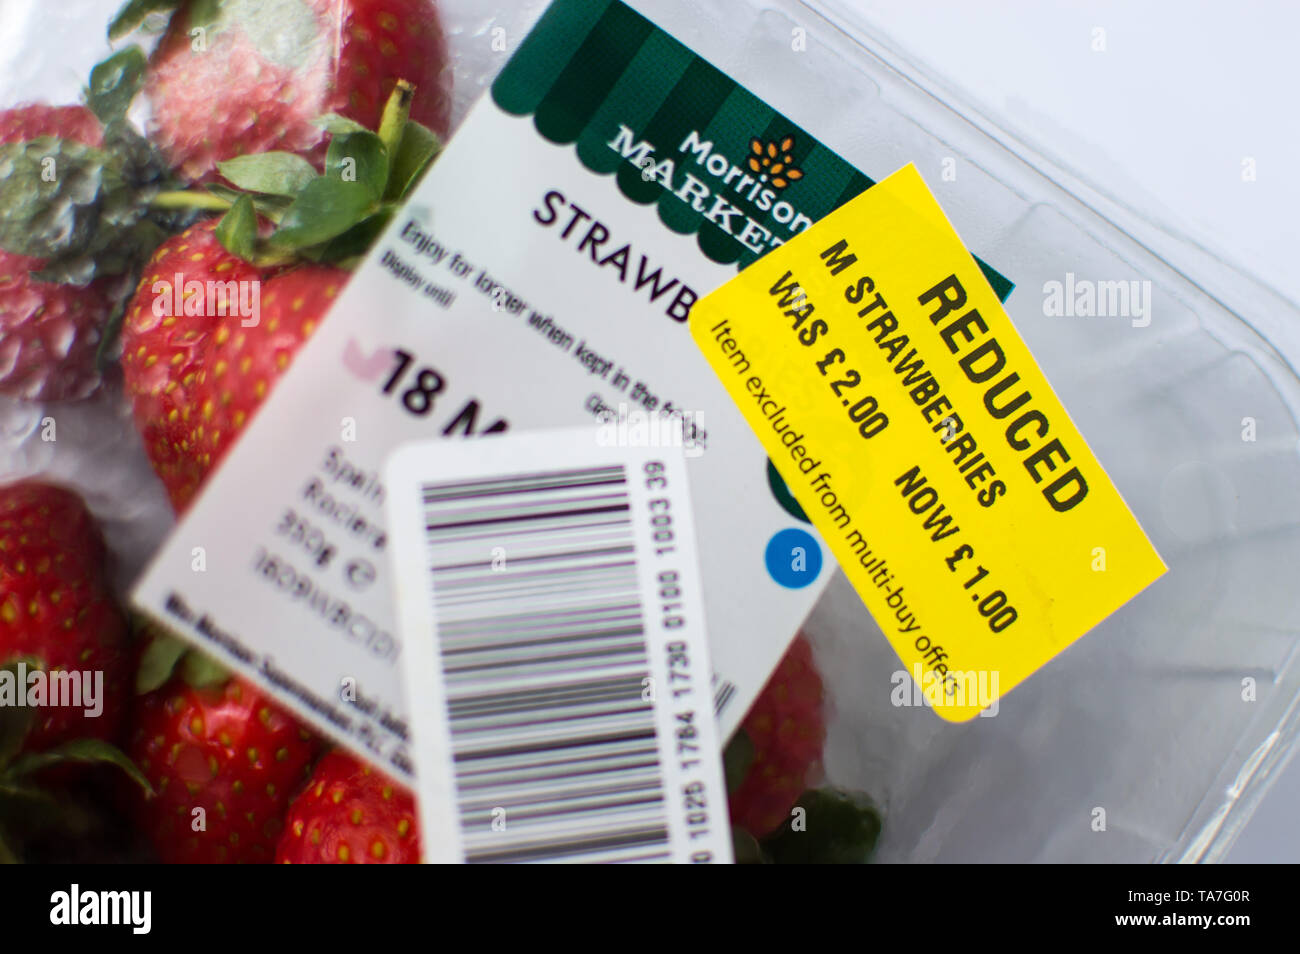 Yellow sticker reduced fruit in Morrisons supermarket - Stock Image